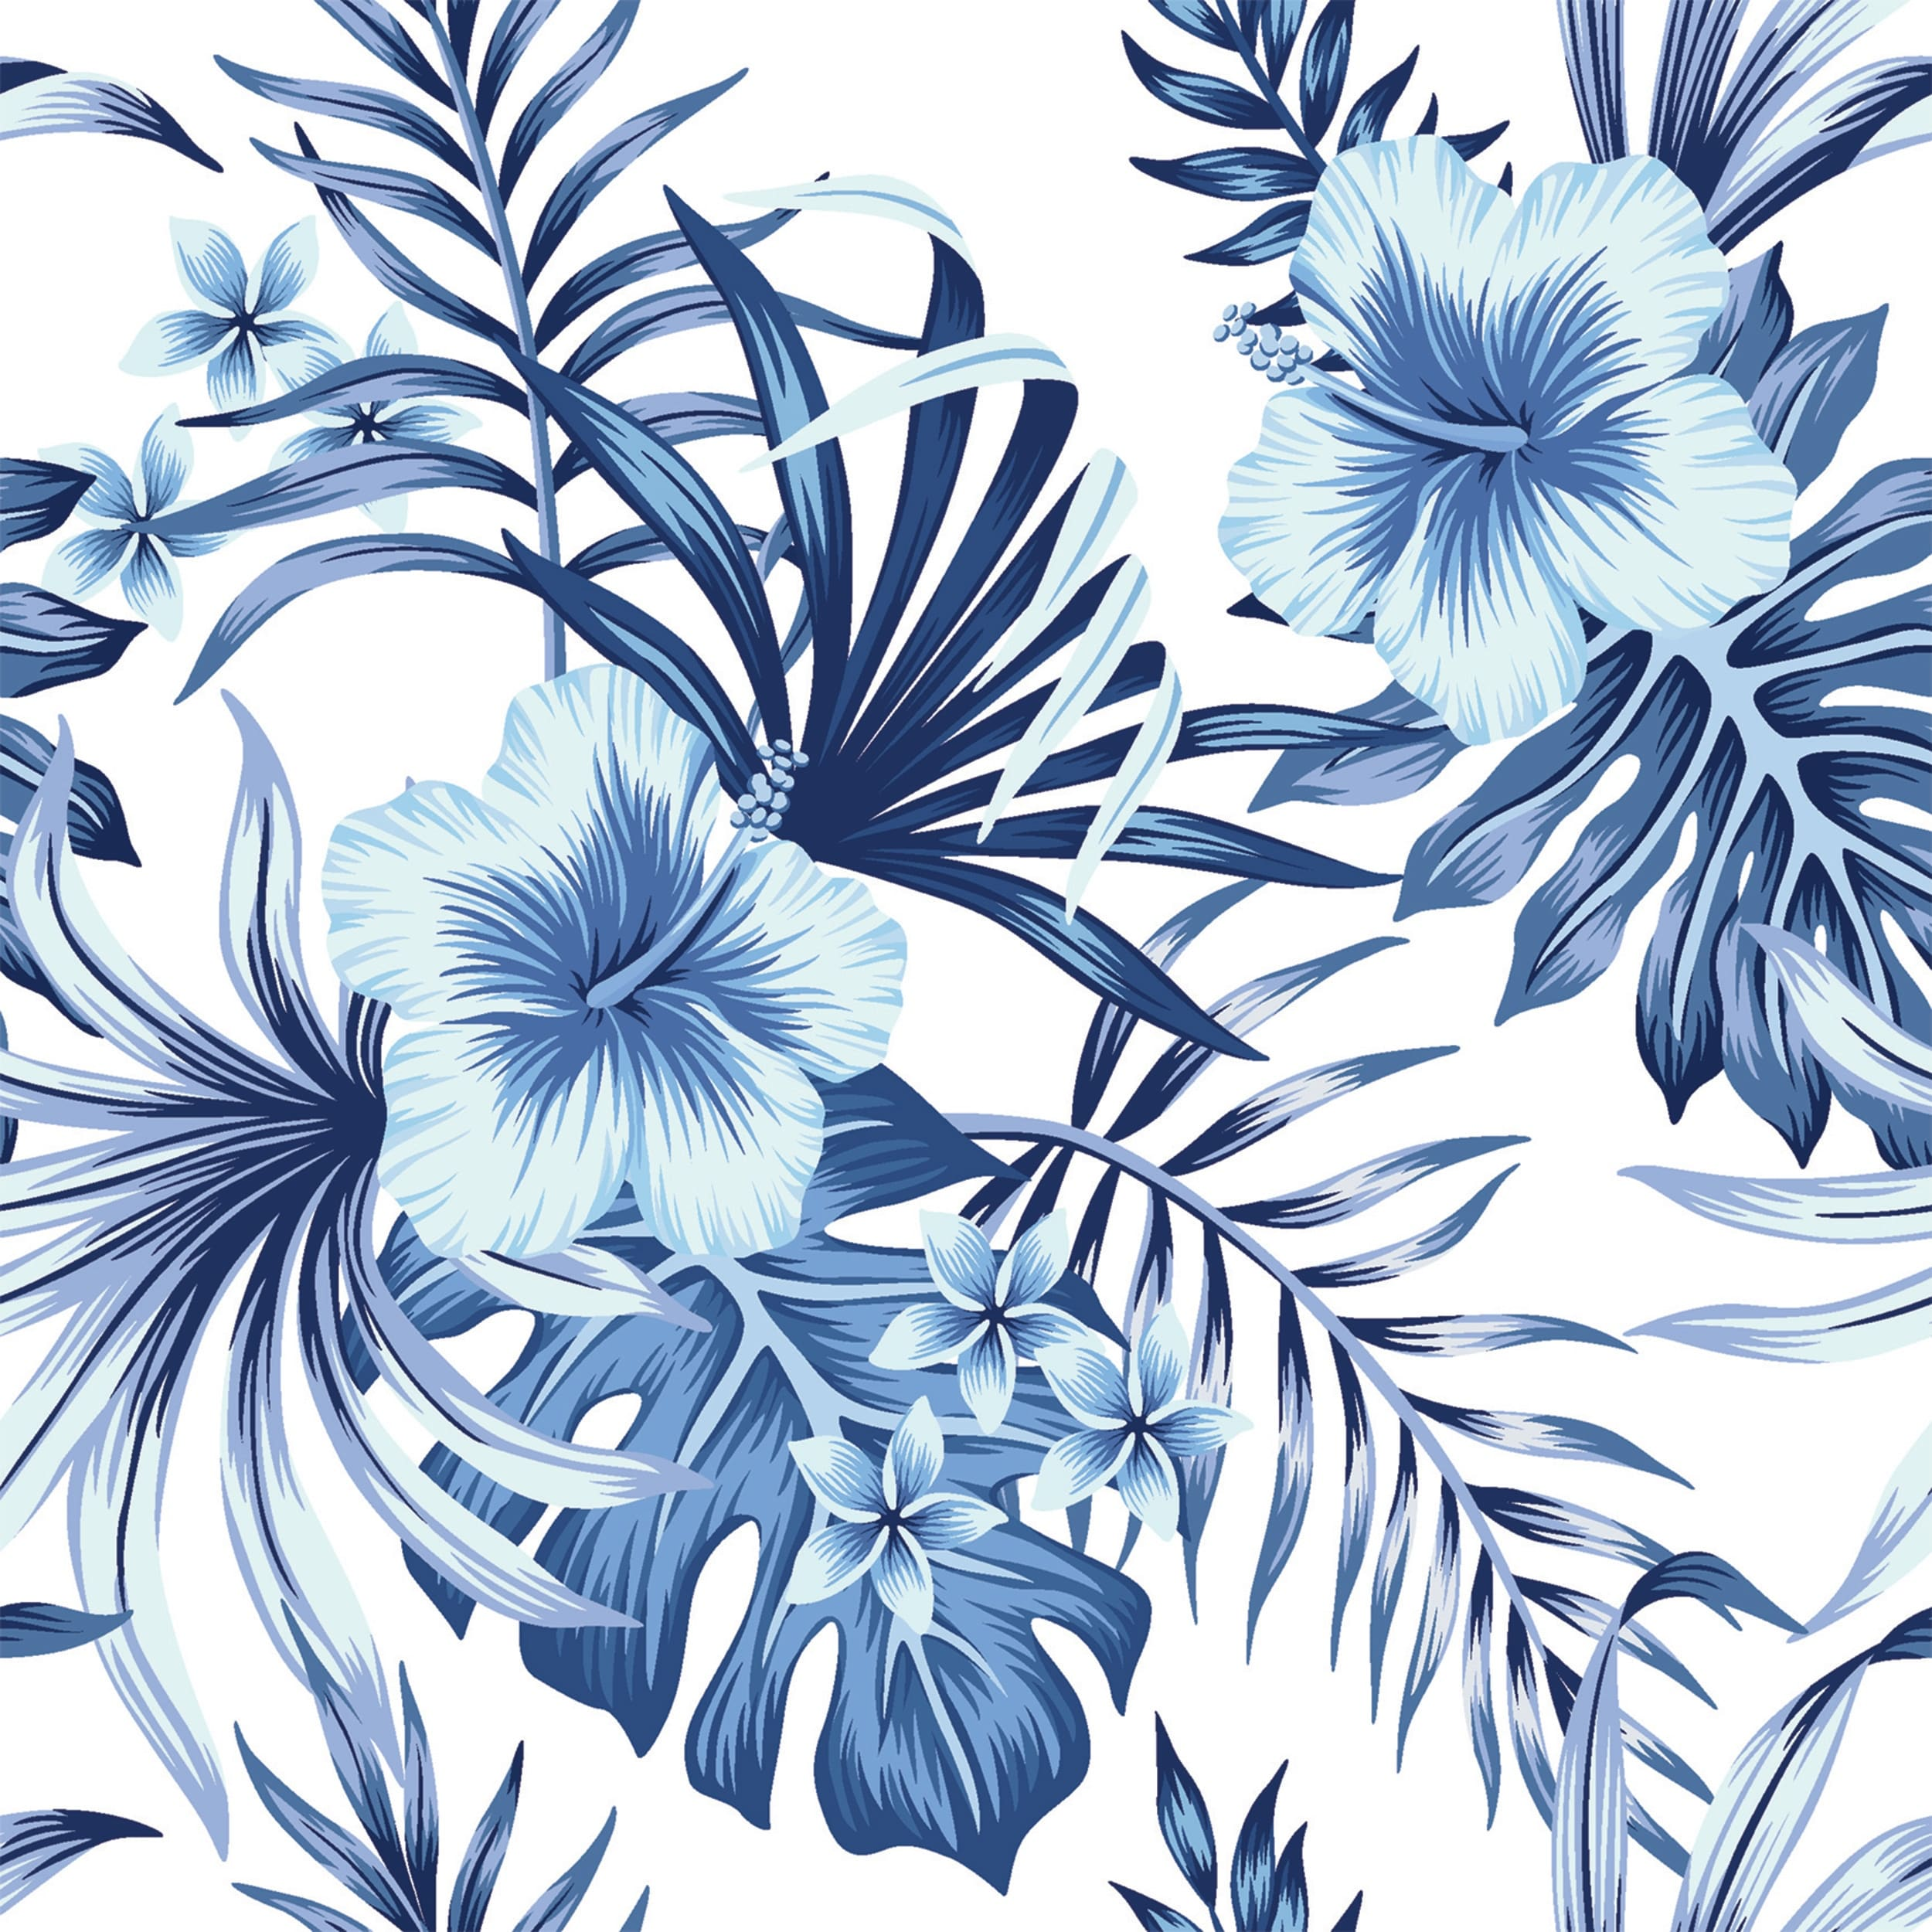 Hibiscus Plumeria Floral Blue Palm Leaves Removable Wallpaper 24 Inch X 10 Ft Overstock 31809399 Feel free to send us your own wallpaper and we will consider adding it to appropriate category. hibiscus plumeria floral blue palm leaves removable wallpaper 24 inch x 10 ft